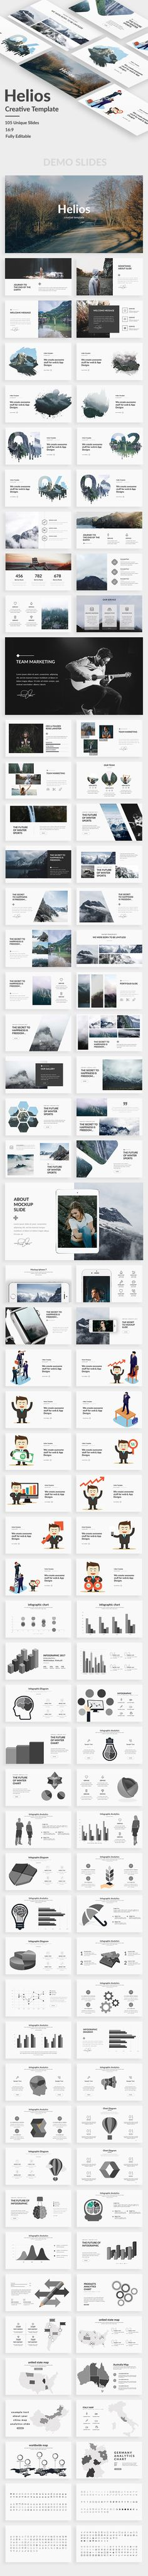 Helios Creative Powerpoint Template — Powerpoint PPT #startup #modern • Available here ➝ https://graphicriver.net/item/helios-creative-powerpoint-template/20707938?ref=pxcr